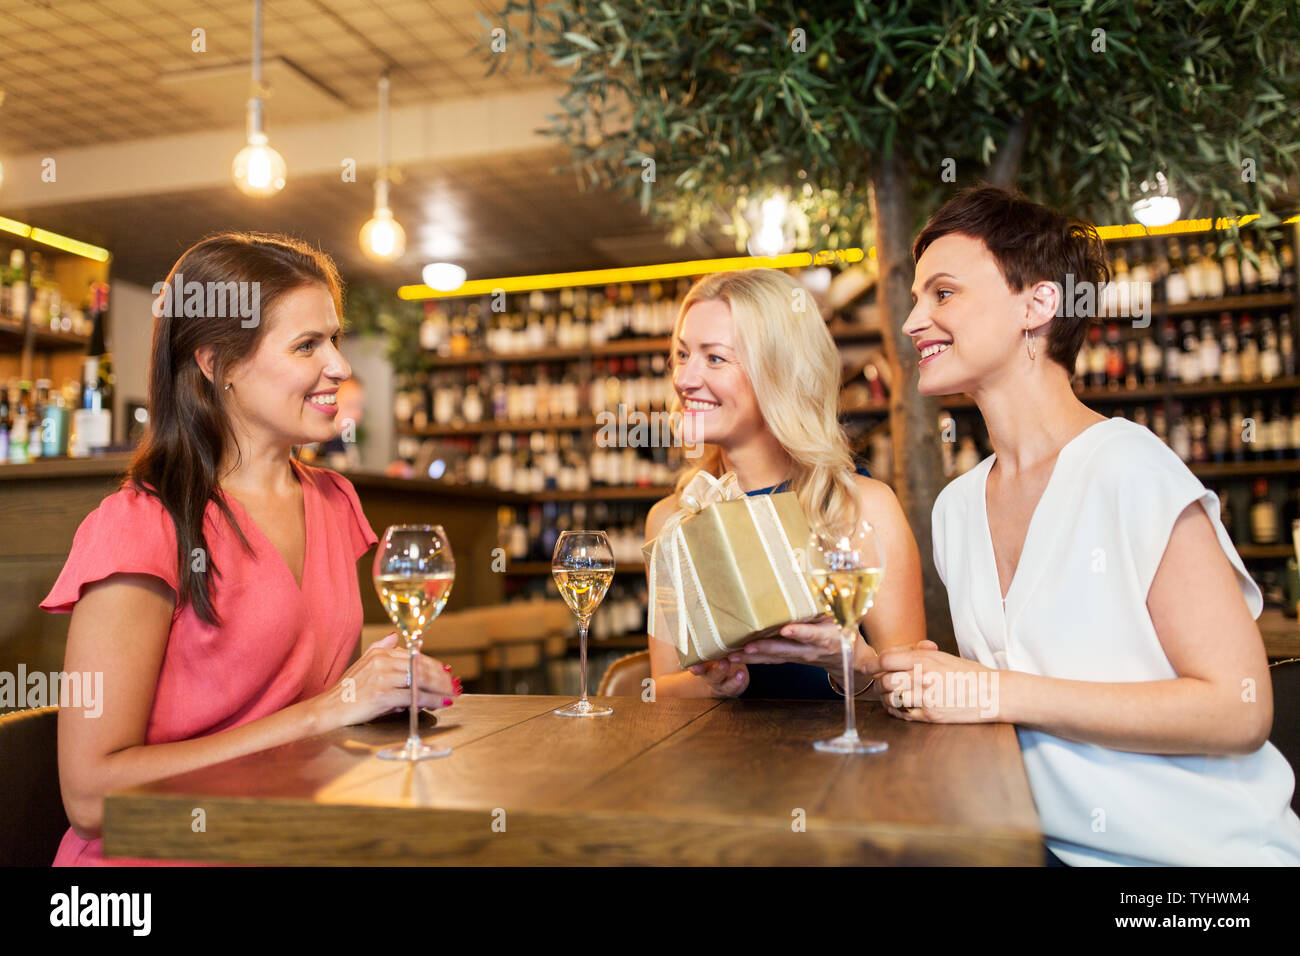 women giving present to friend at wine bar - Stock Image